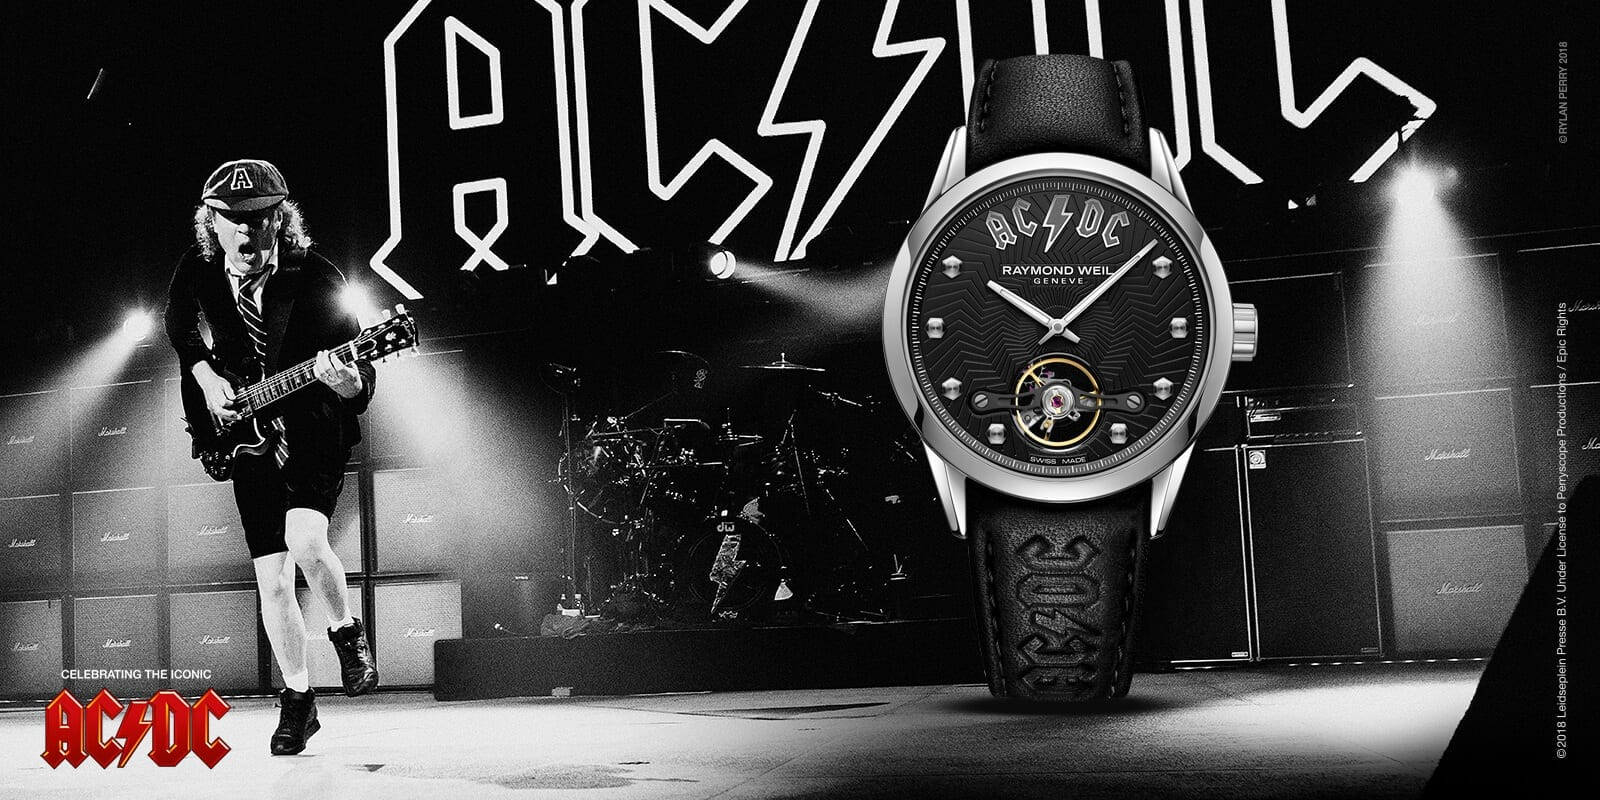 RAYMOND WEIL | ACDC Limited Edition Raymond Weil Freelancer Luxury Watch - Pack Shot Image